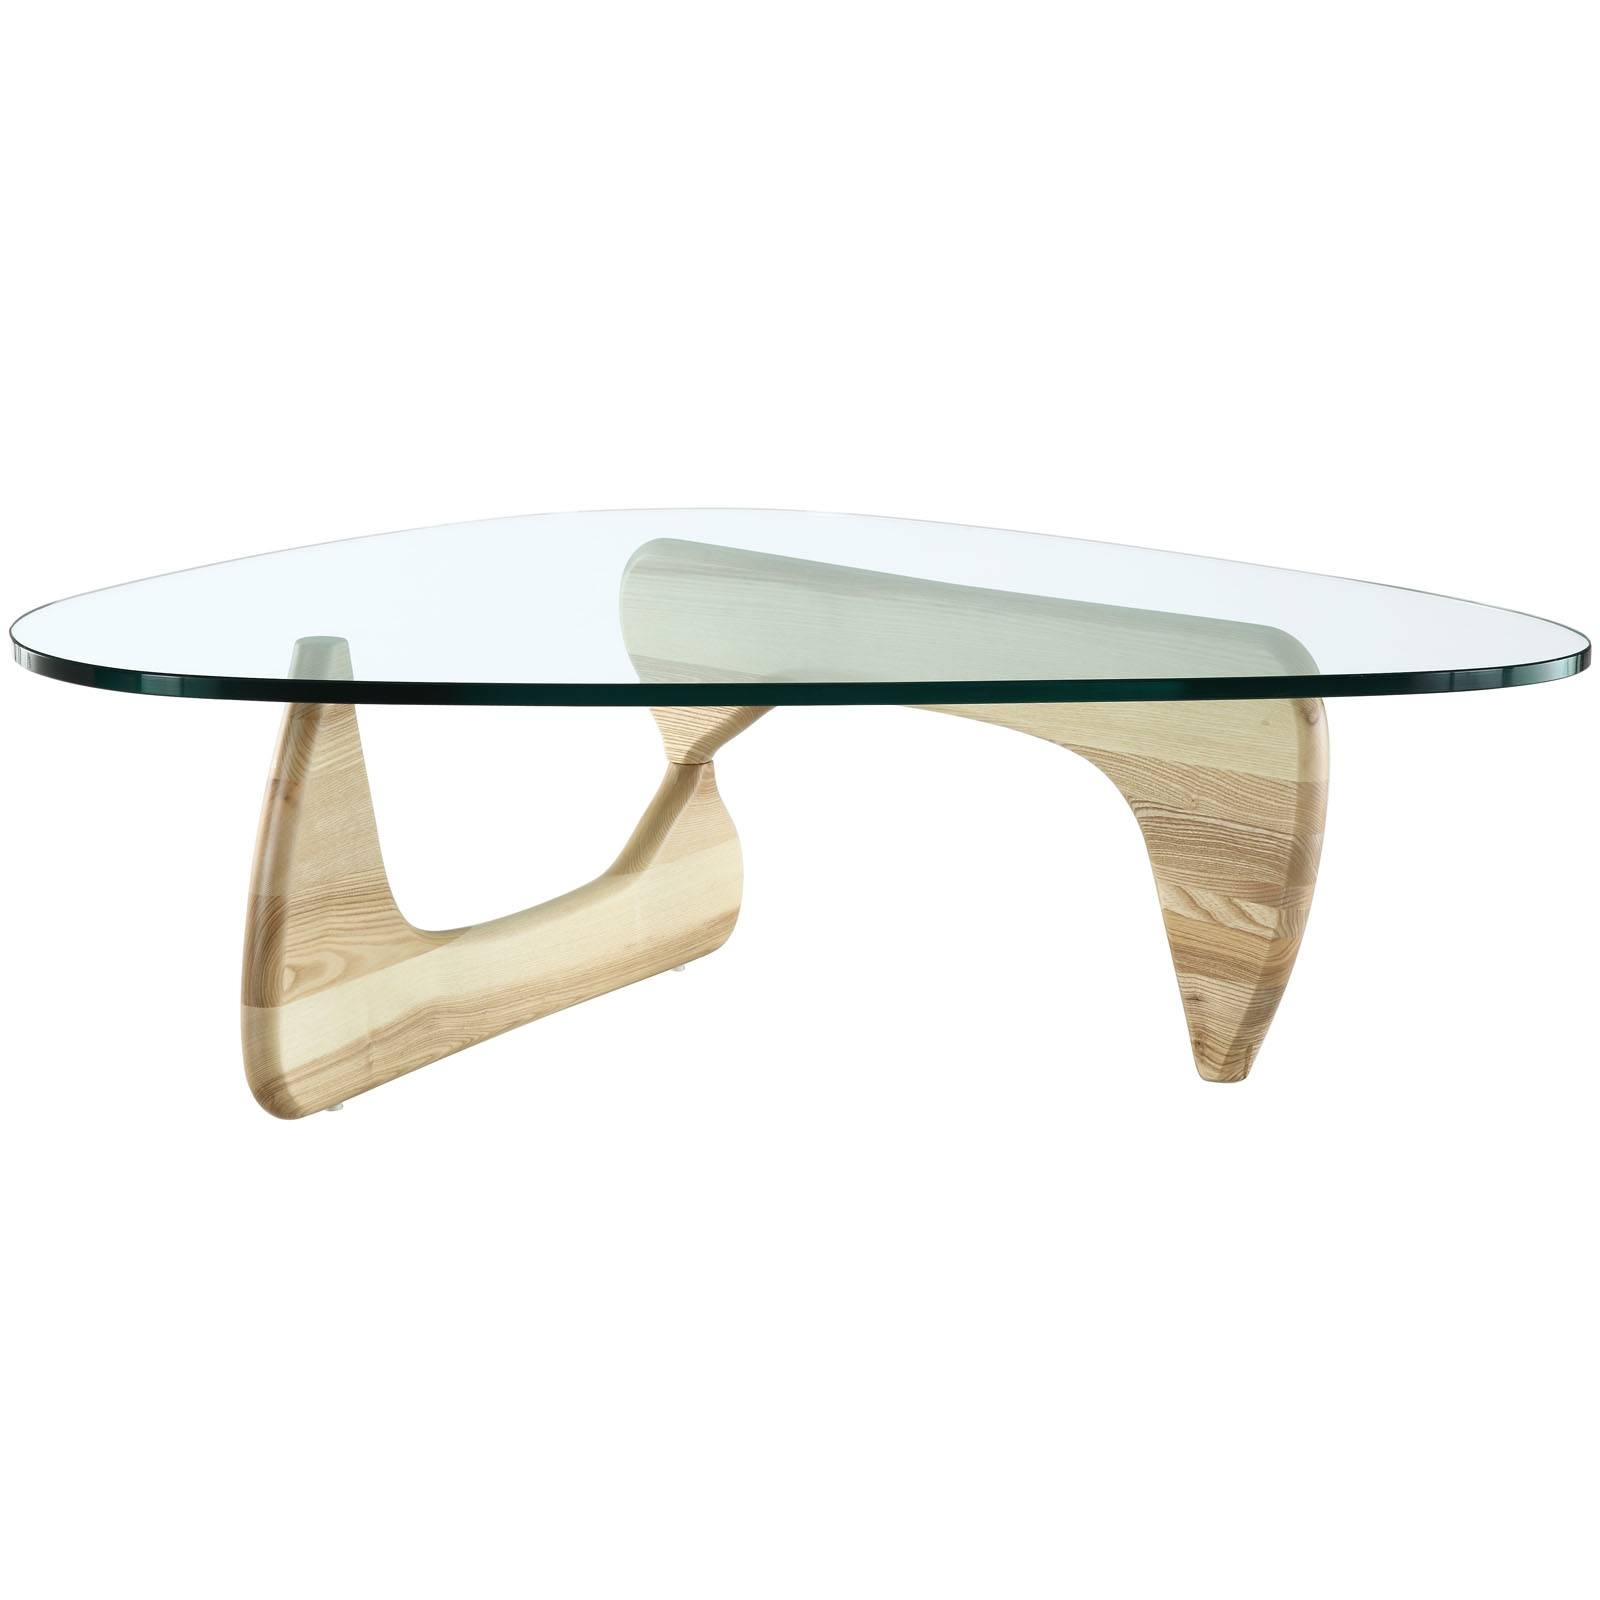 Noguchi Table - Noguchi Coffee Table Replica | Modterior in Noguchi Coffee Tables (Image 18 of 30)